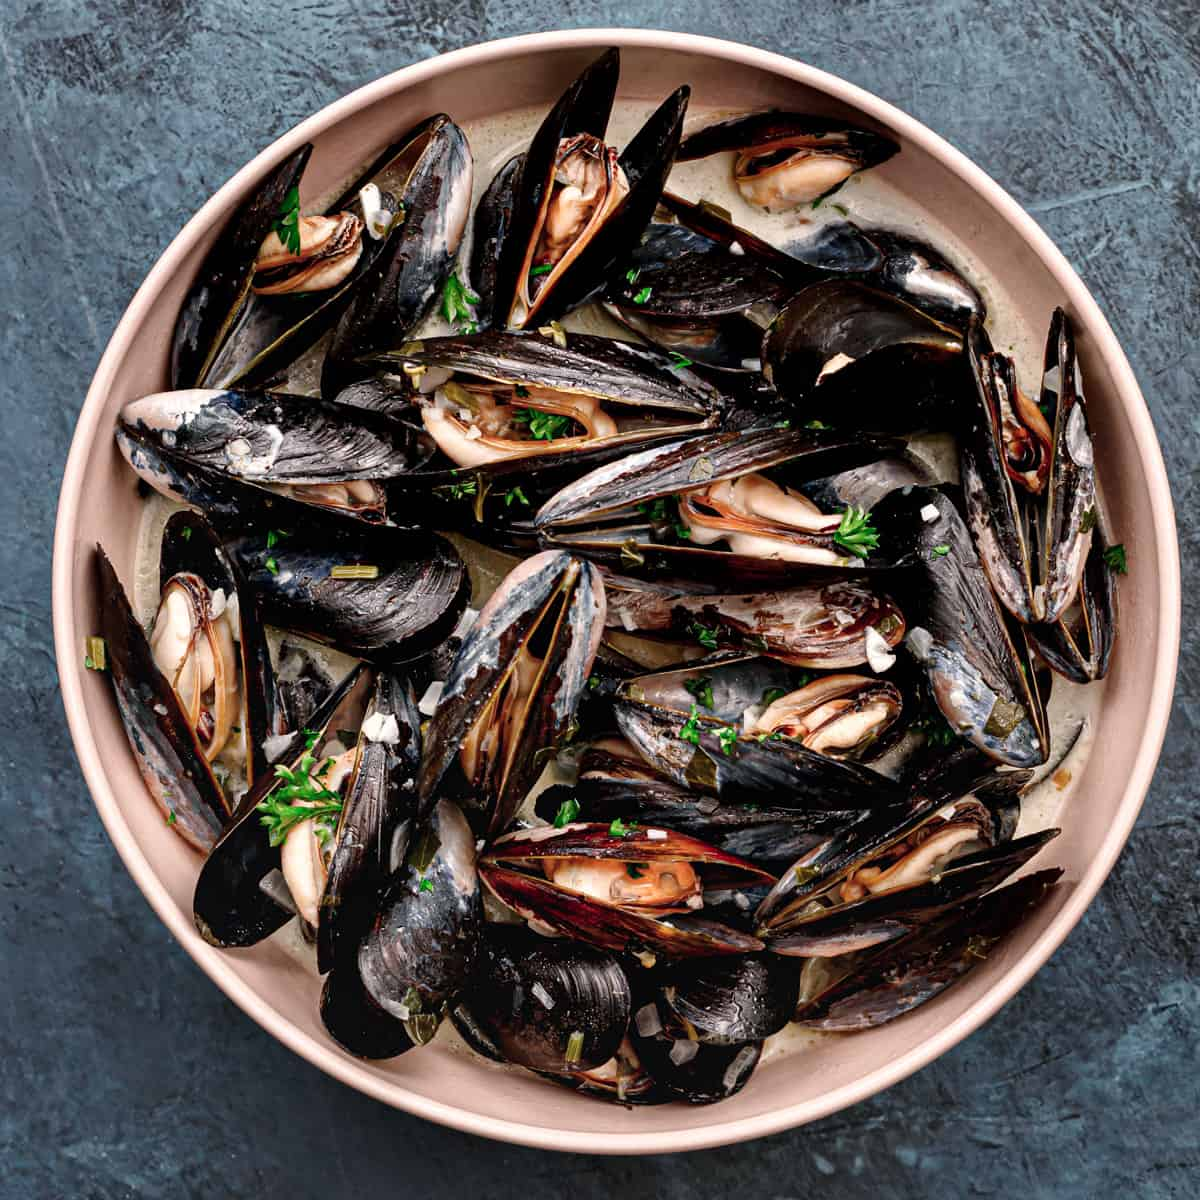 How to Cook Mussels ala Moules Marinieres